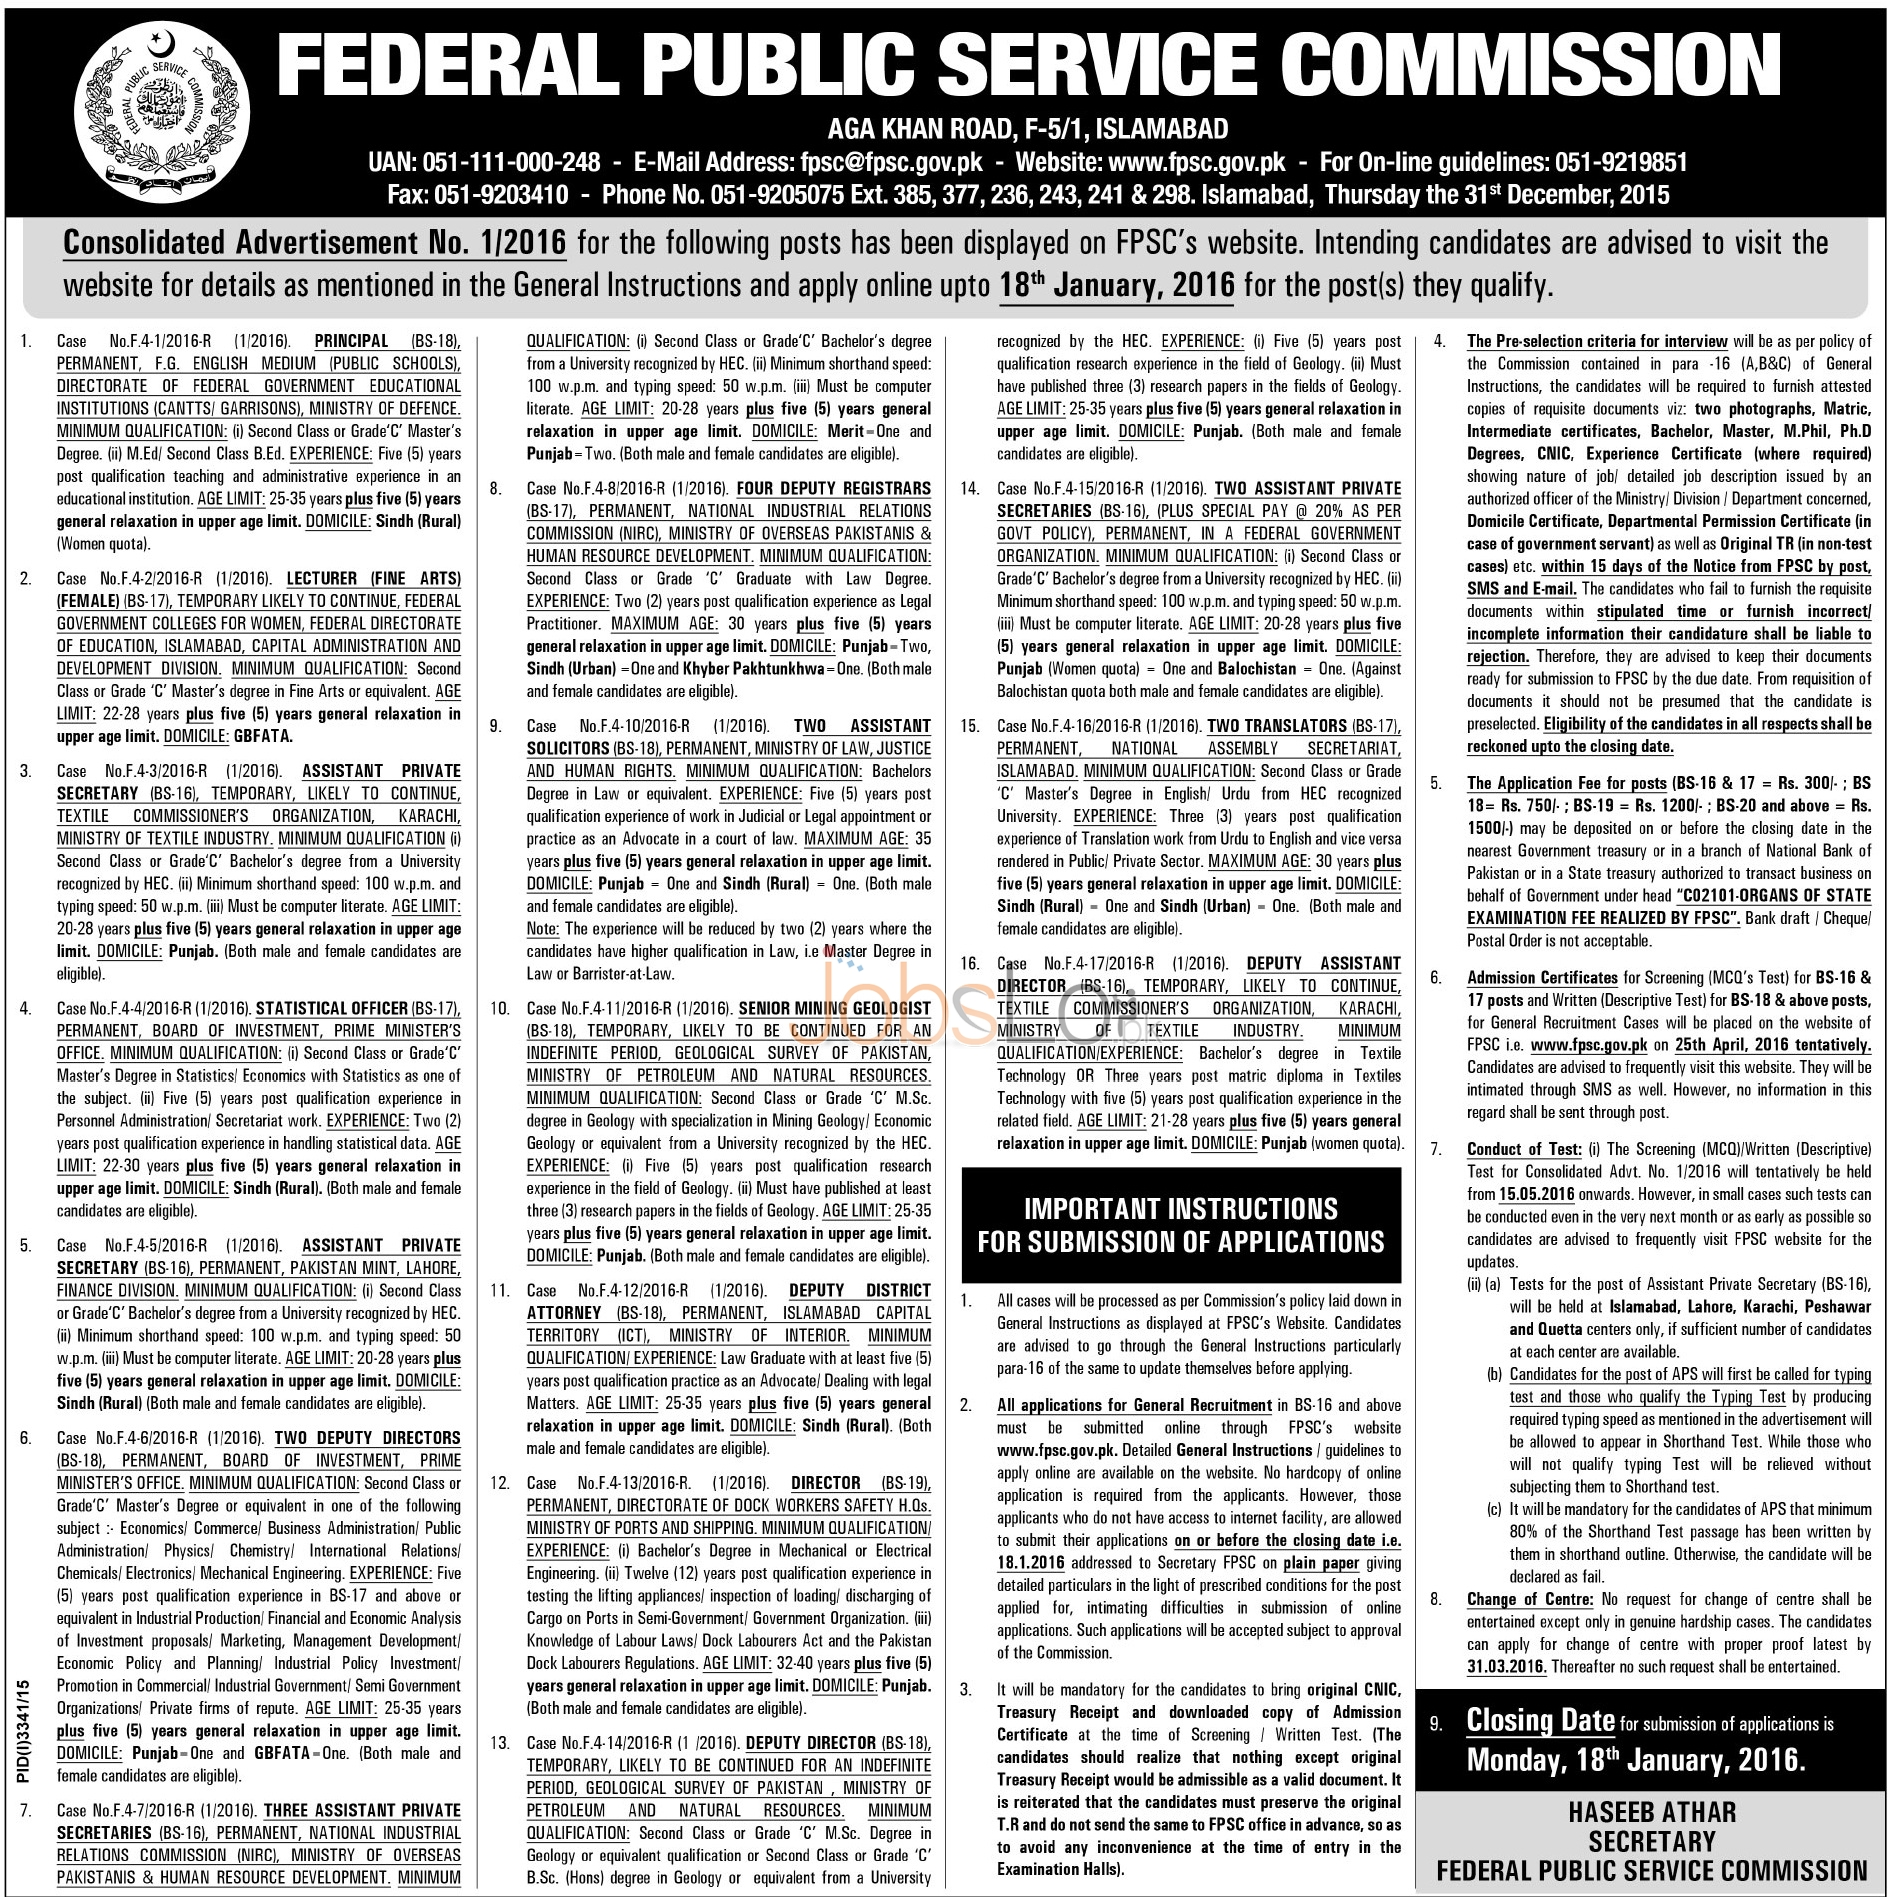 Vacant Situations in Federal Public Service Commission 2016